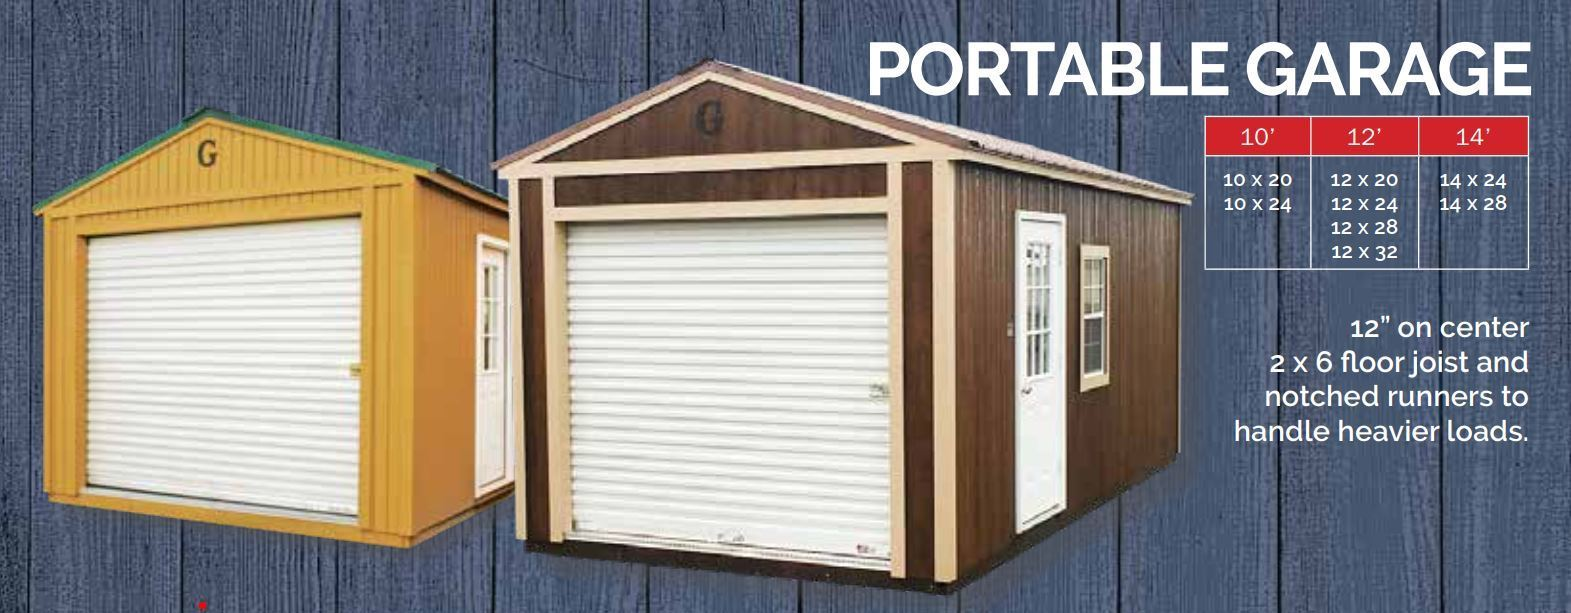 Graceland Portable Garages For Larger Storage and Utility